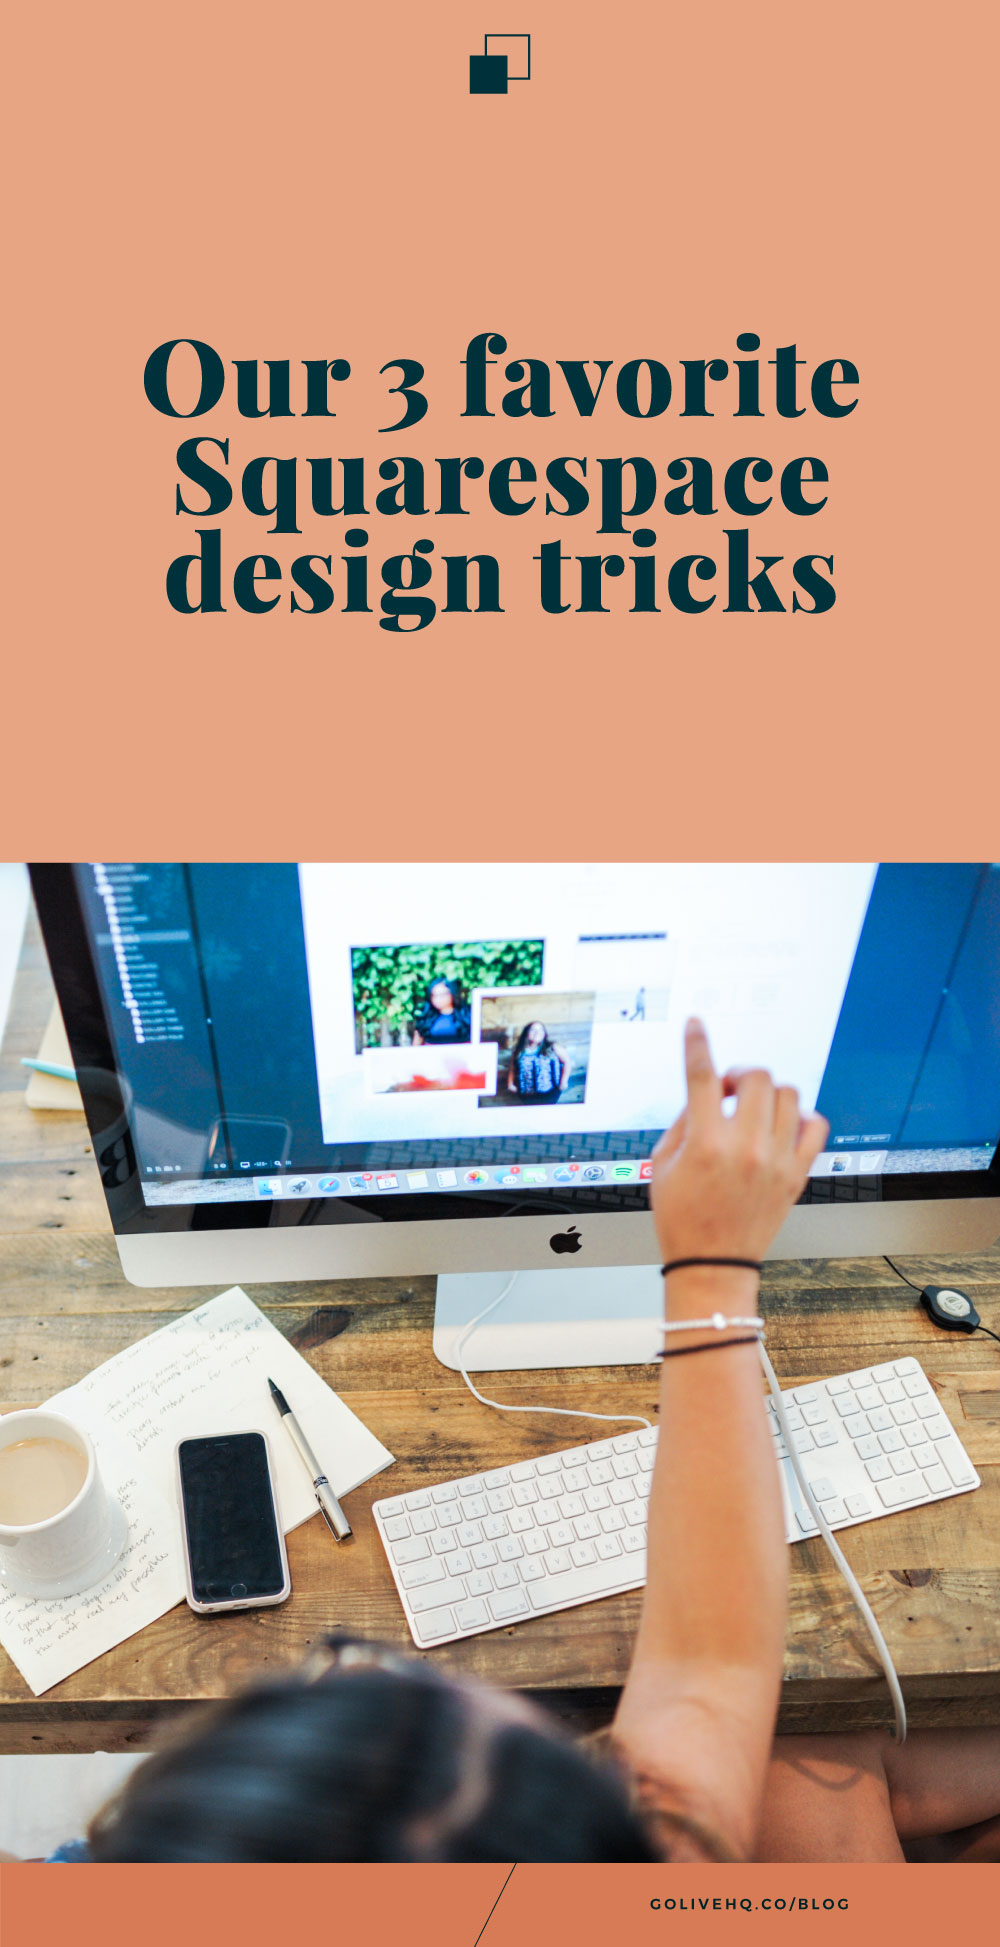 3 quick tricks for creating your Squarespace website by golivehq.co/blog